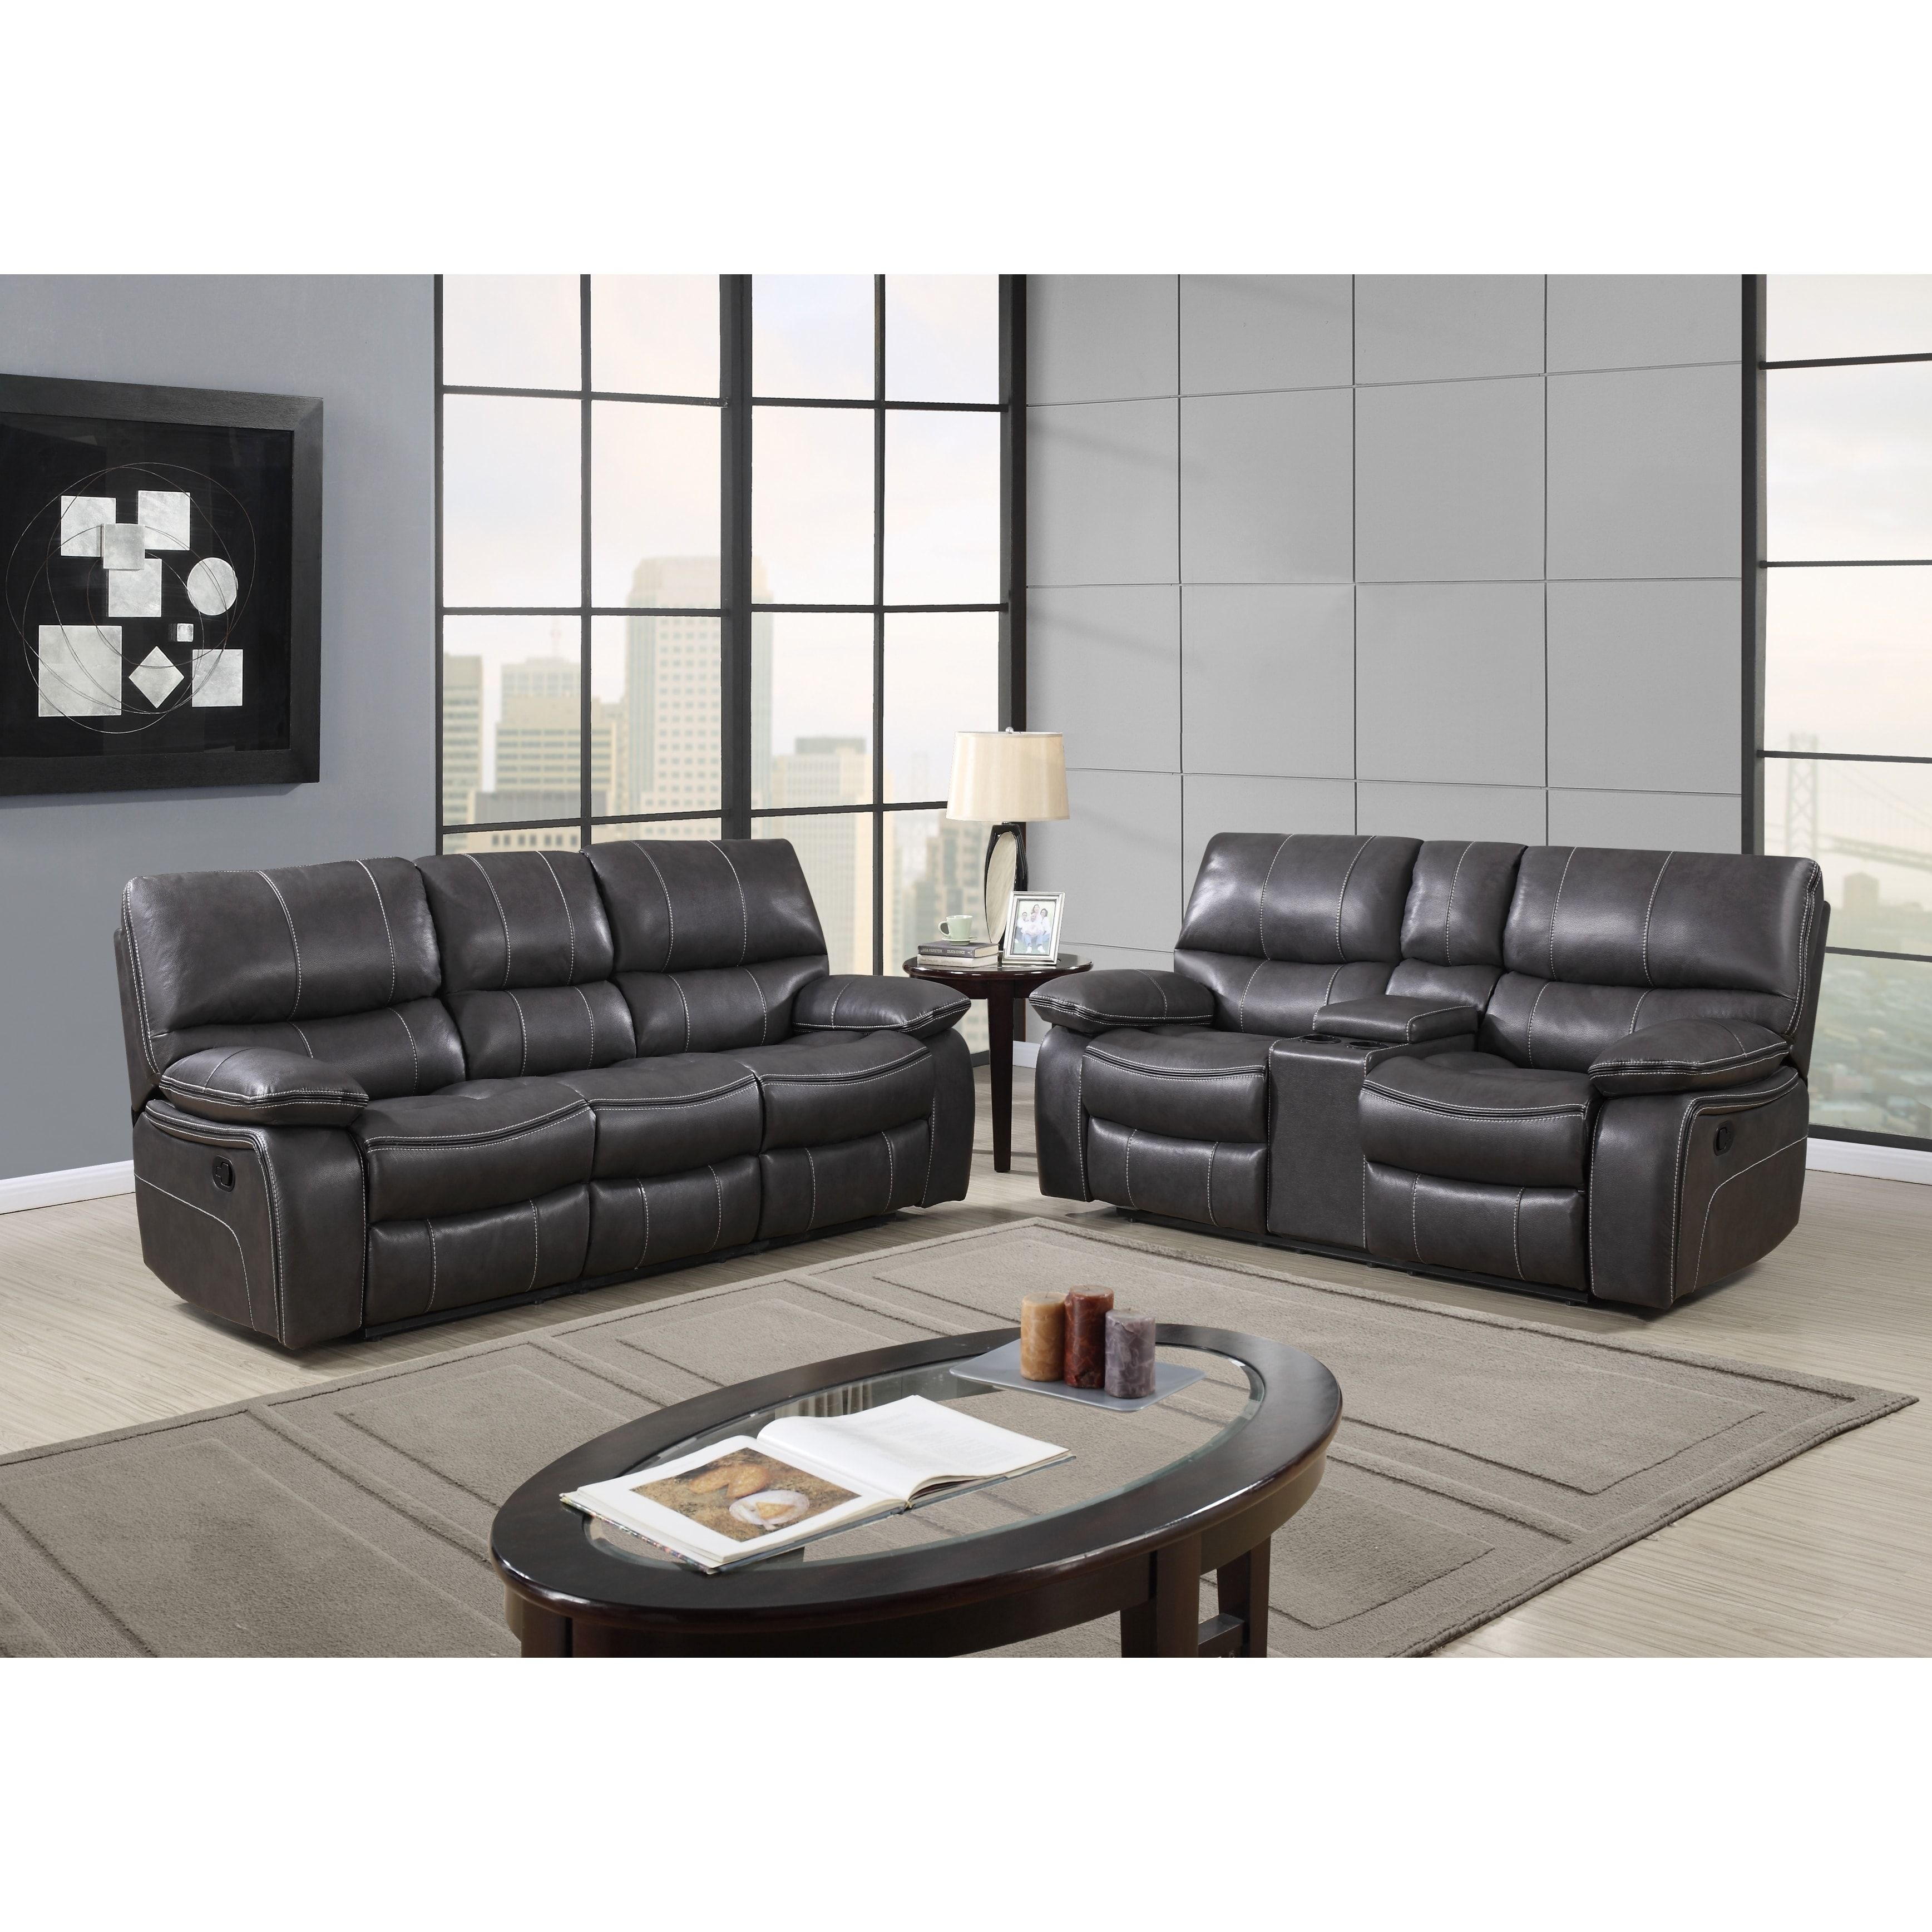 Charming Grey Leather Reclining Sofa | Overstock.com Shopping   The Best Deals On  Sofas U0026